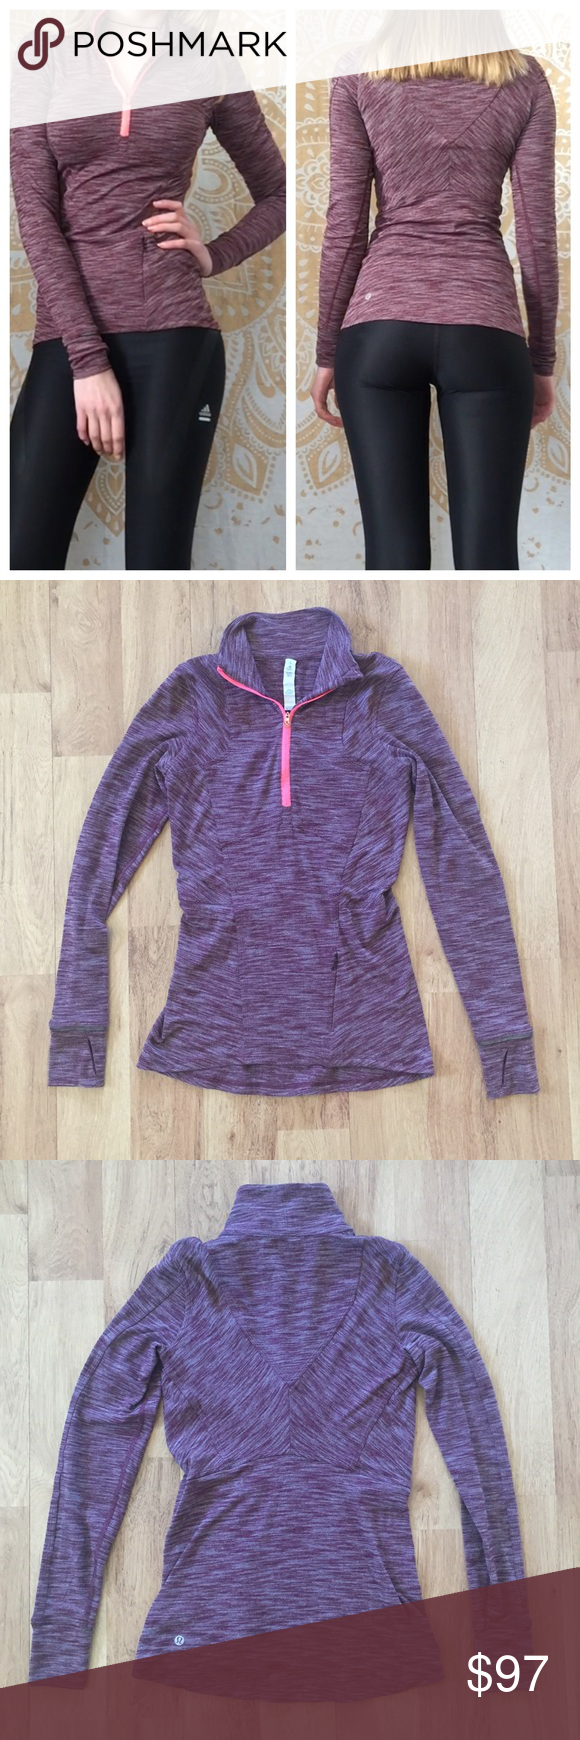 Lululemon Quarter-Zip Fitted Purple Jacket Size 2 Color is like the modeling picture, the lighting slightly affected the other pictures⚜️I love receiving offers through the offer button!⚜️ Good condition, as seen in pictures! Fast same or next day shipping! Open to offers but I don't negotiate in the comments so please use the offer button😊 lululemon athletica Jackets & Coats